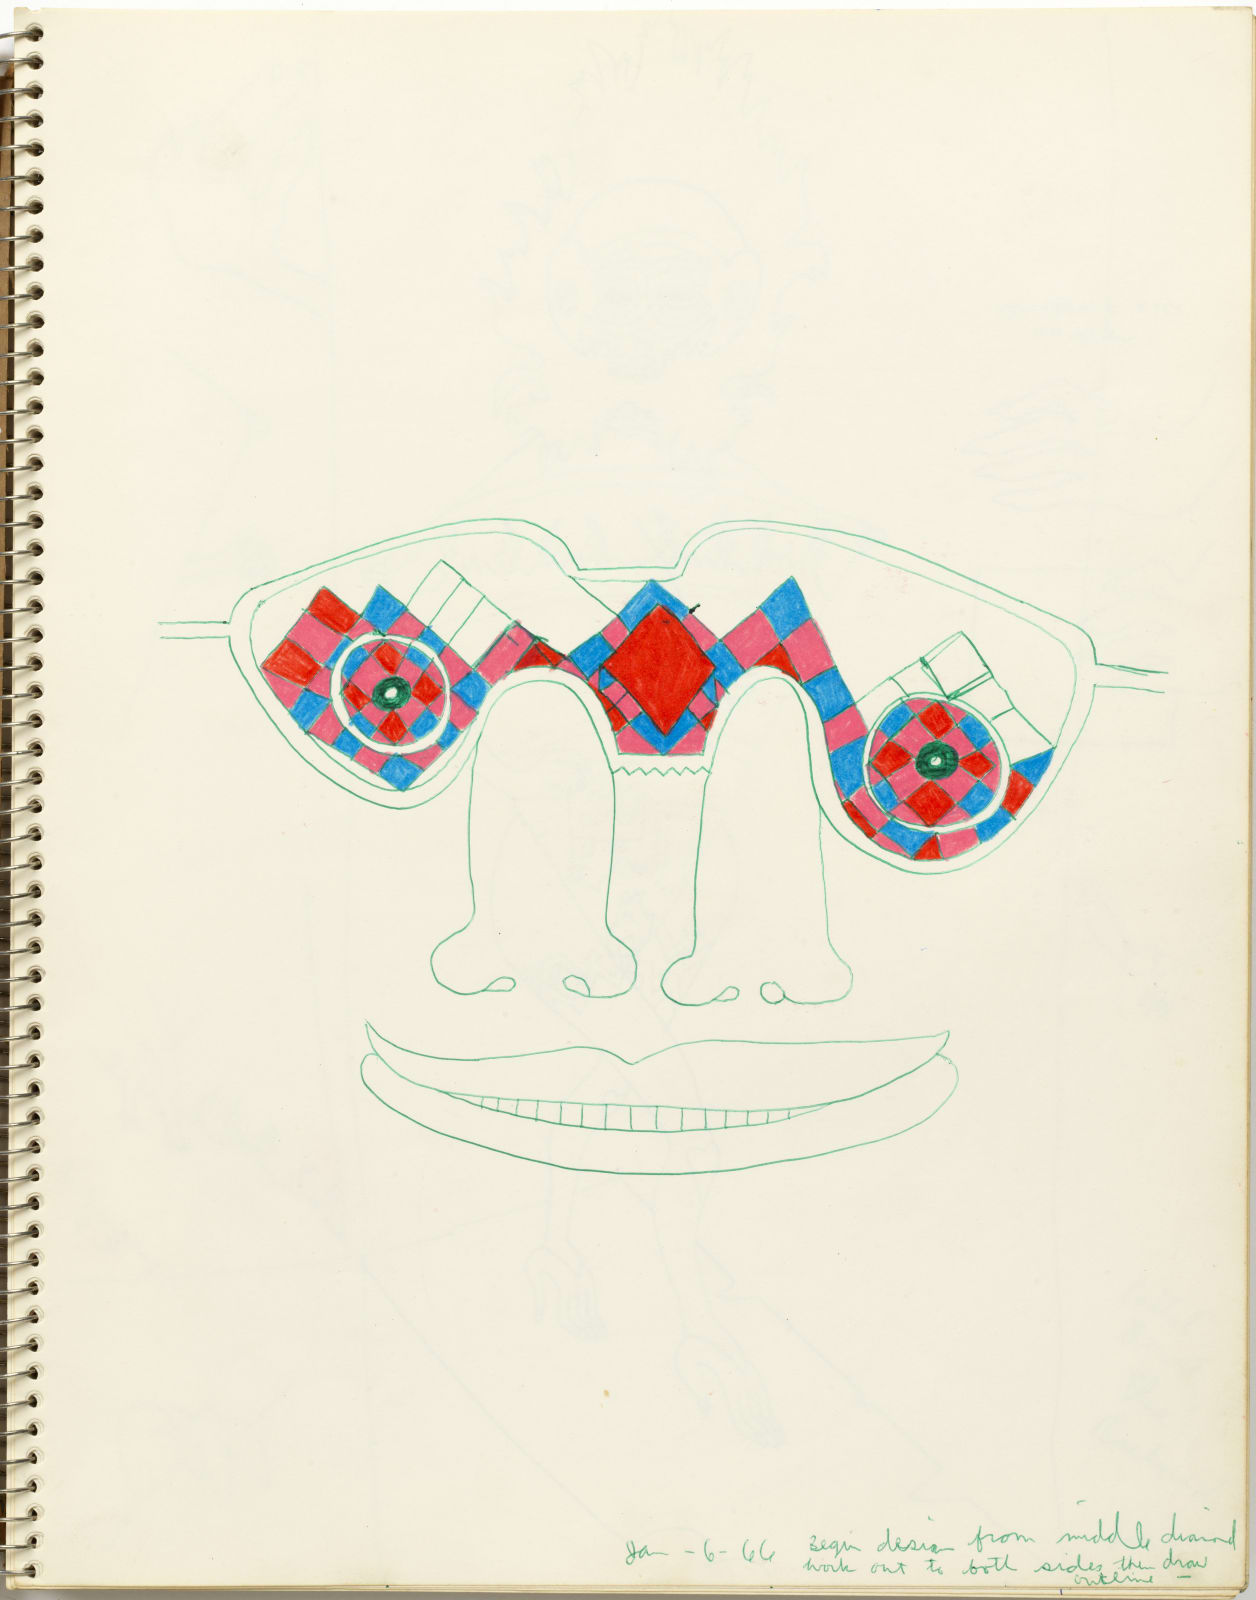 Untitled, January 6, 1966, colored pencil and ball-point pen on sketchbook, 14 x 11 inches